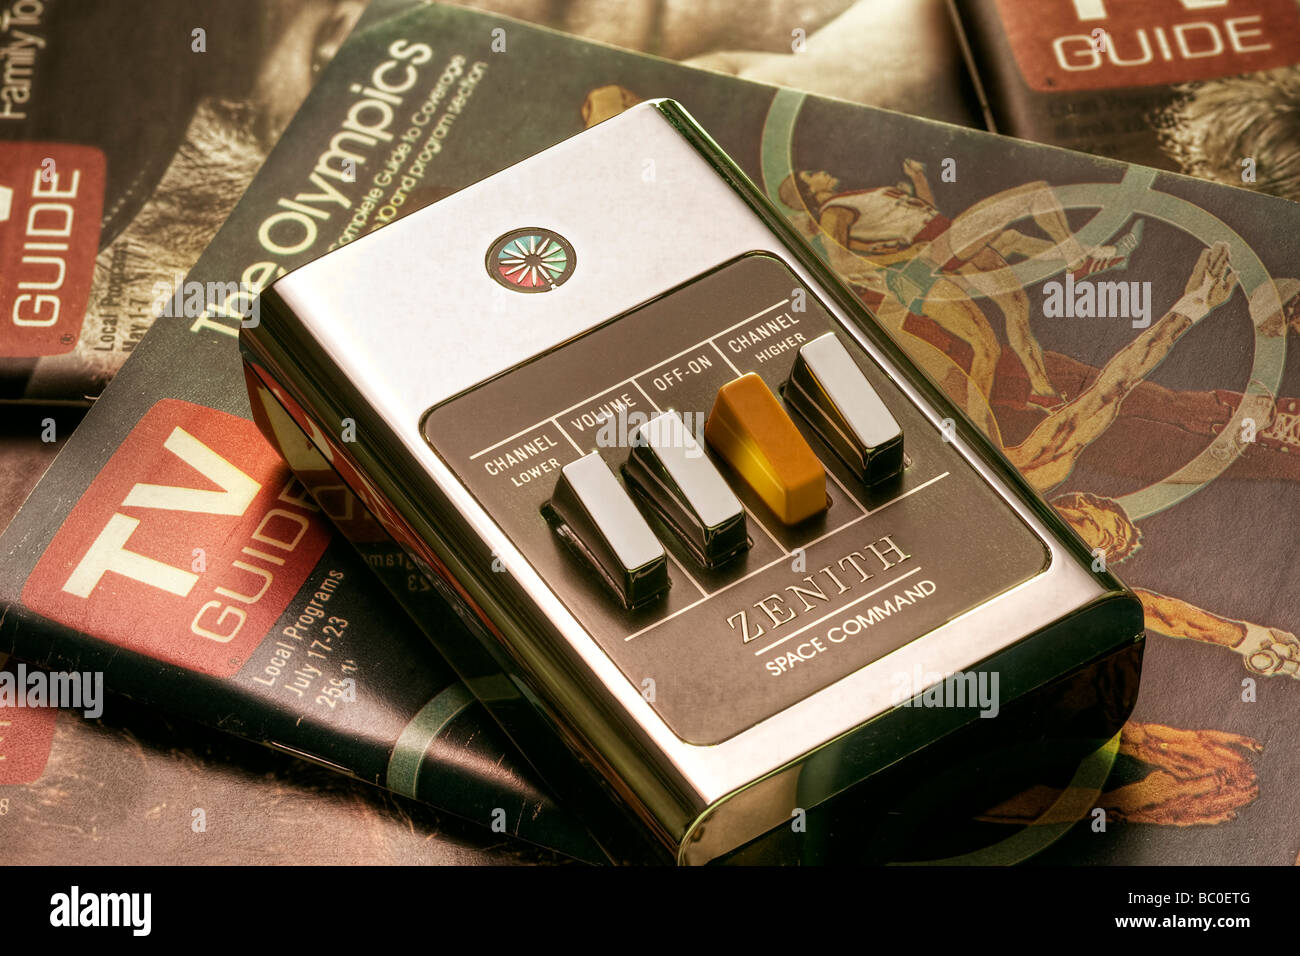 Zenith Space Command clicker remote placed on period-specific 1970's TV-guide magazines Stock Photo